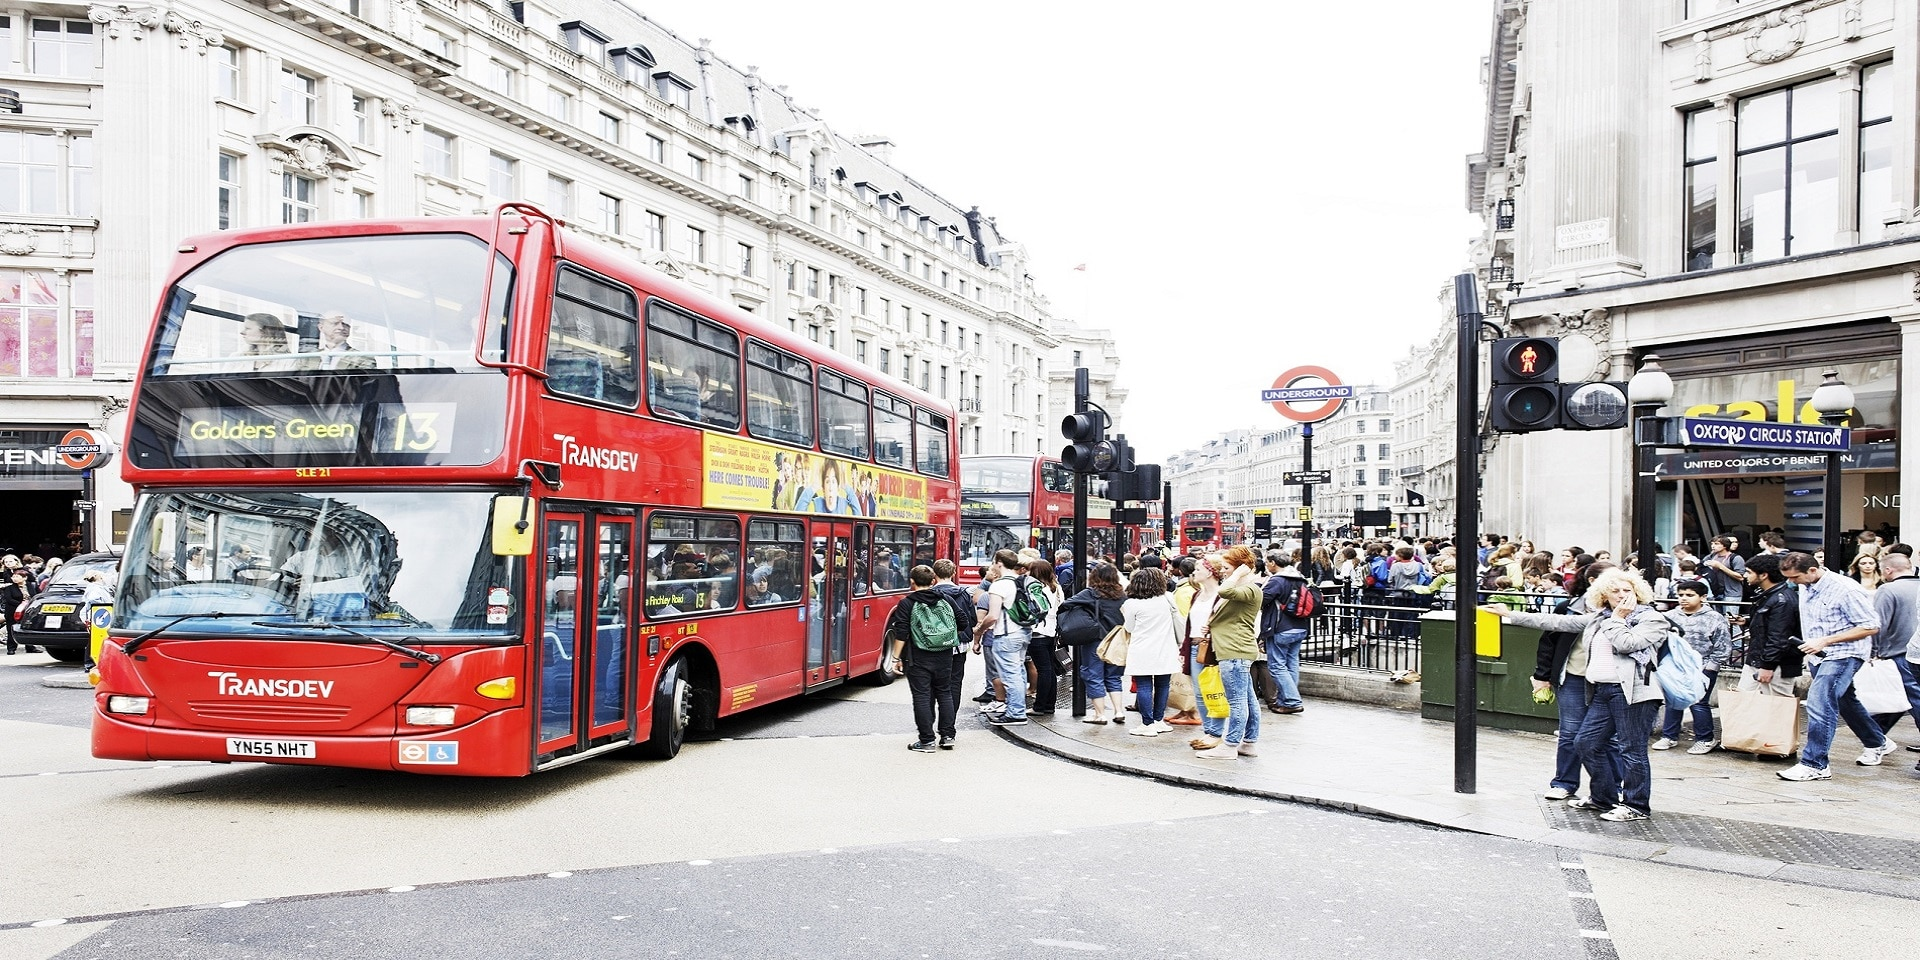 Un bus rouge typique de Londres à l'arrêt Oxford Circus.